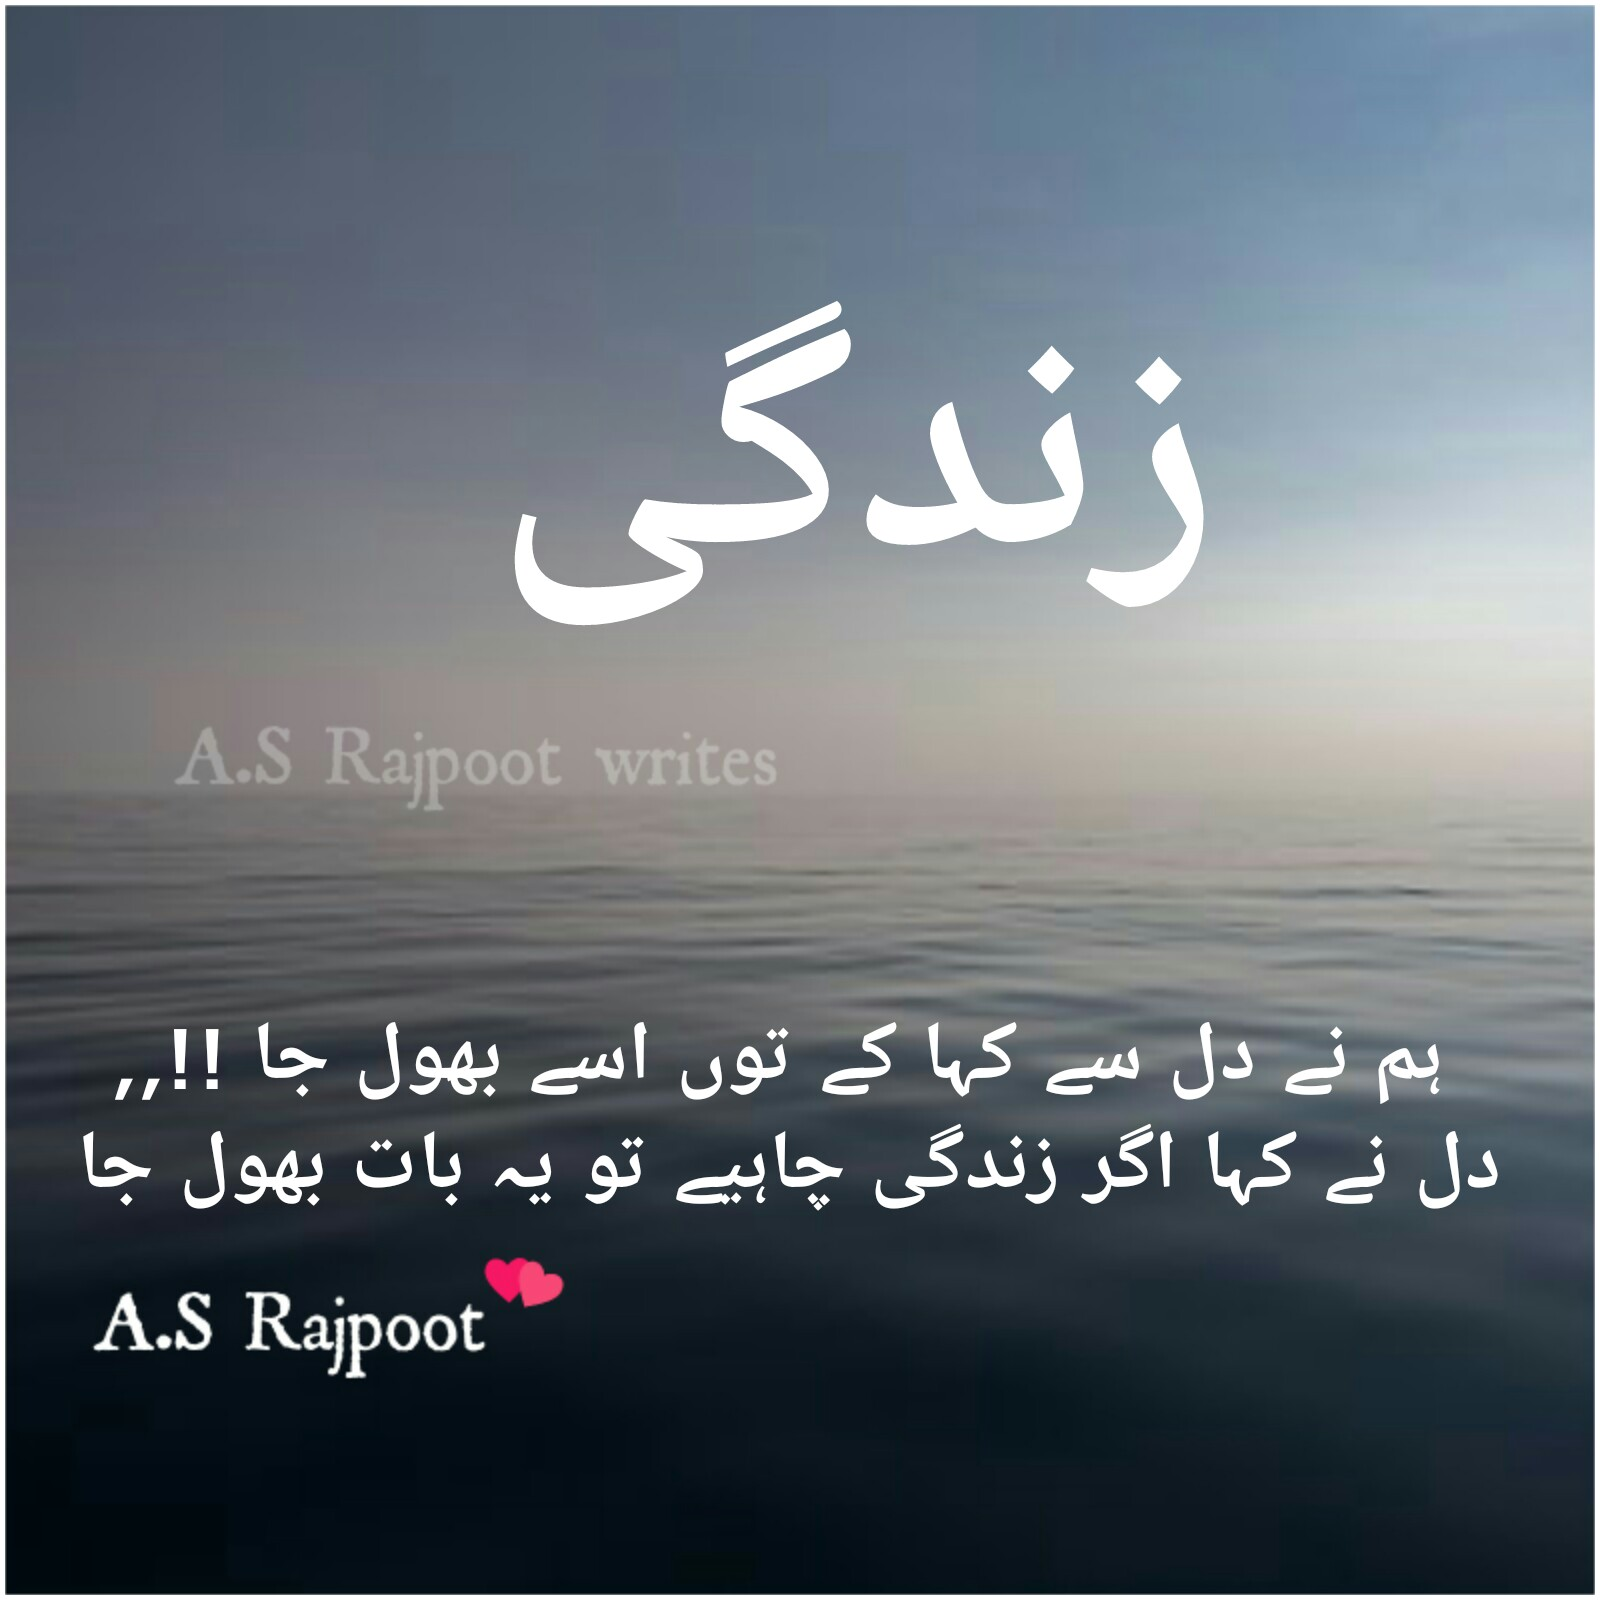 Such Kha Quotes And Poetry Urdu Poetry Pinterestcom